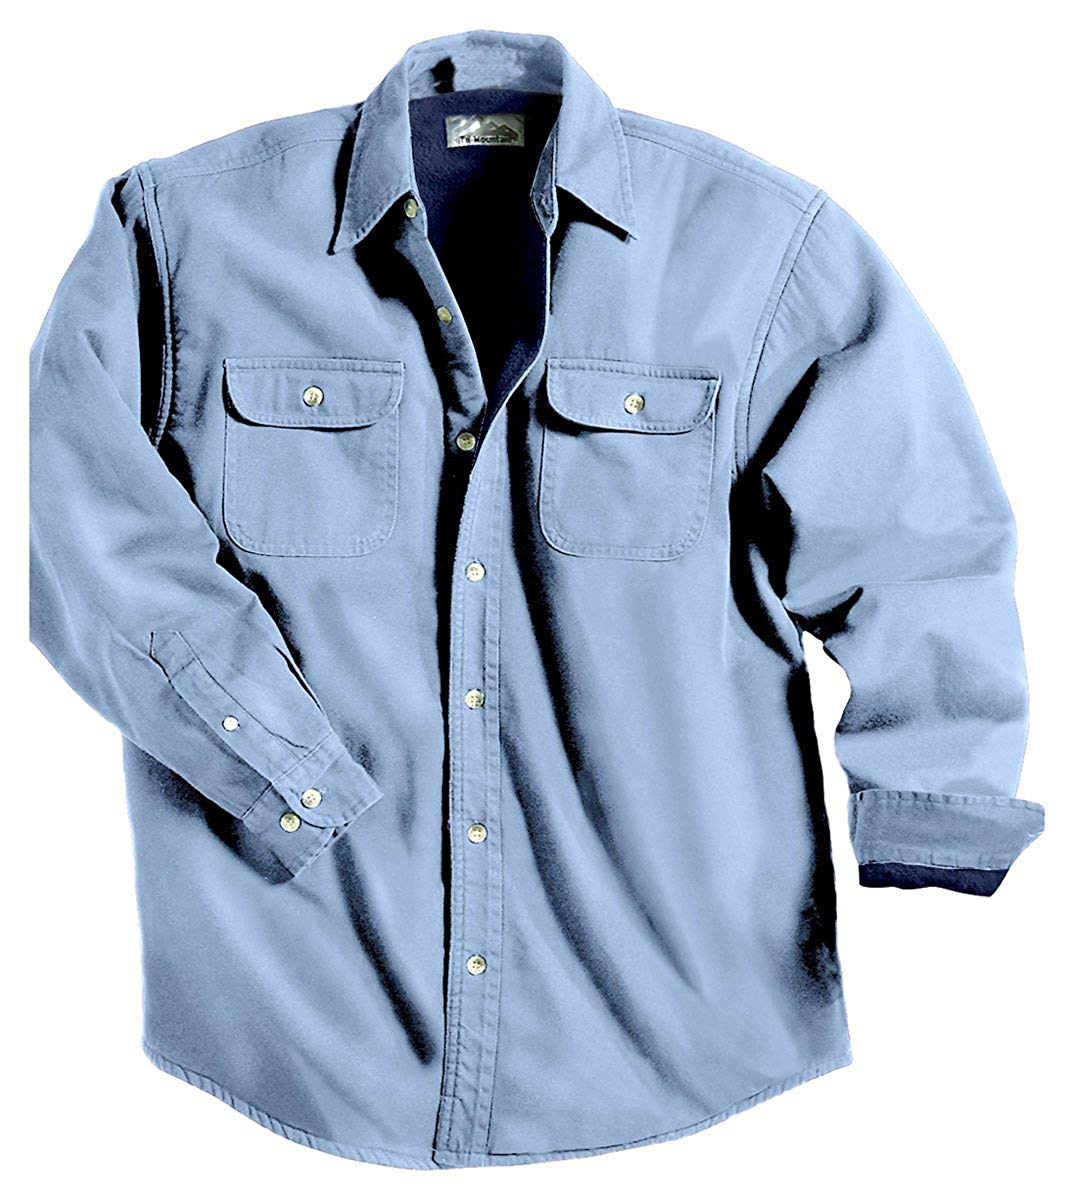 d8b06db34c8 Get Quotations · TRM Men s Cotton Tahoe Stonewashed Fleece Denim Shirt  Jacket (10 Color